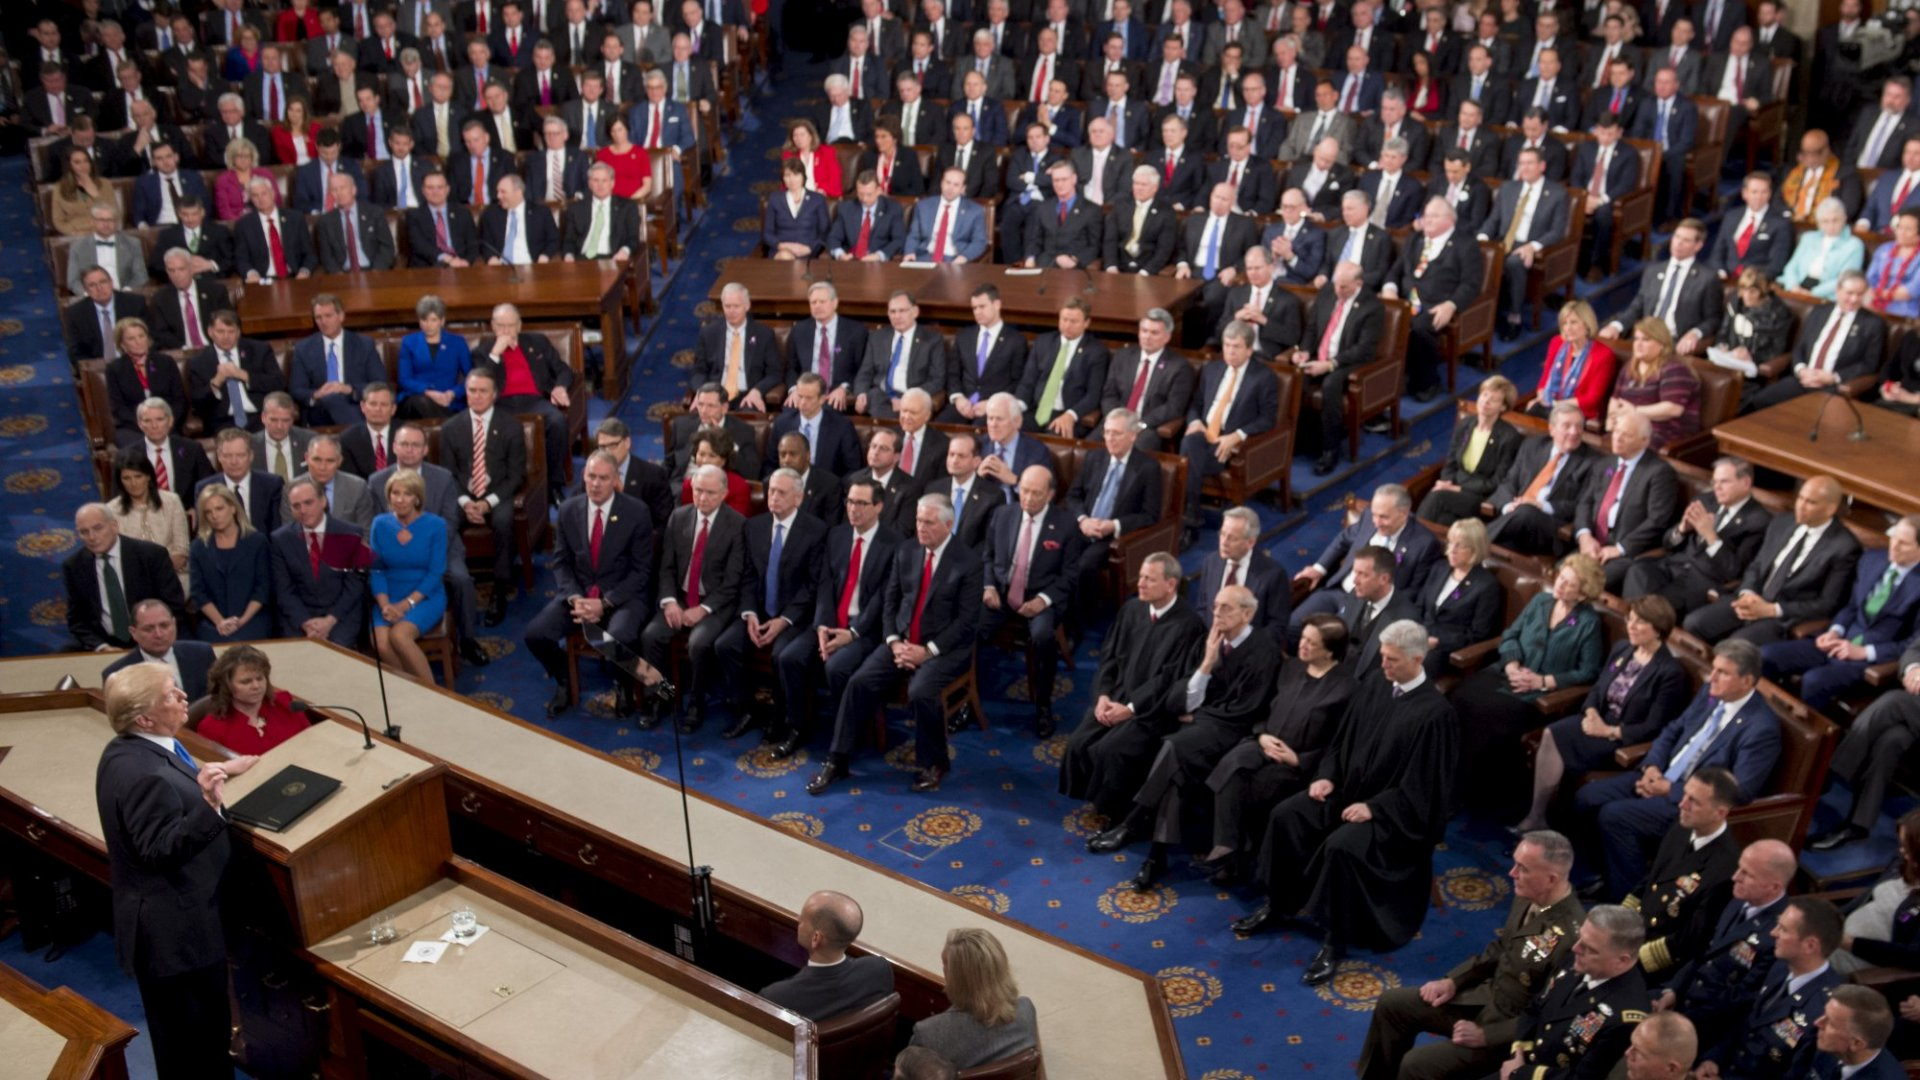 You May Not Hear About America's State of the Union, But You Should Consider Your Own